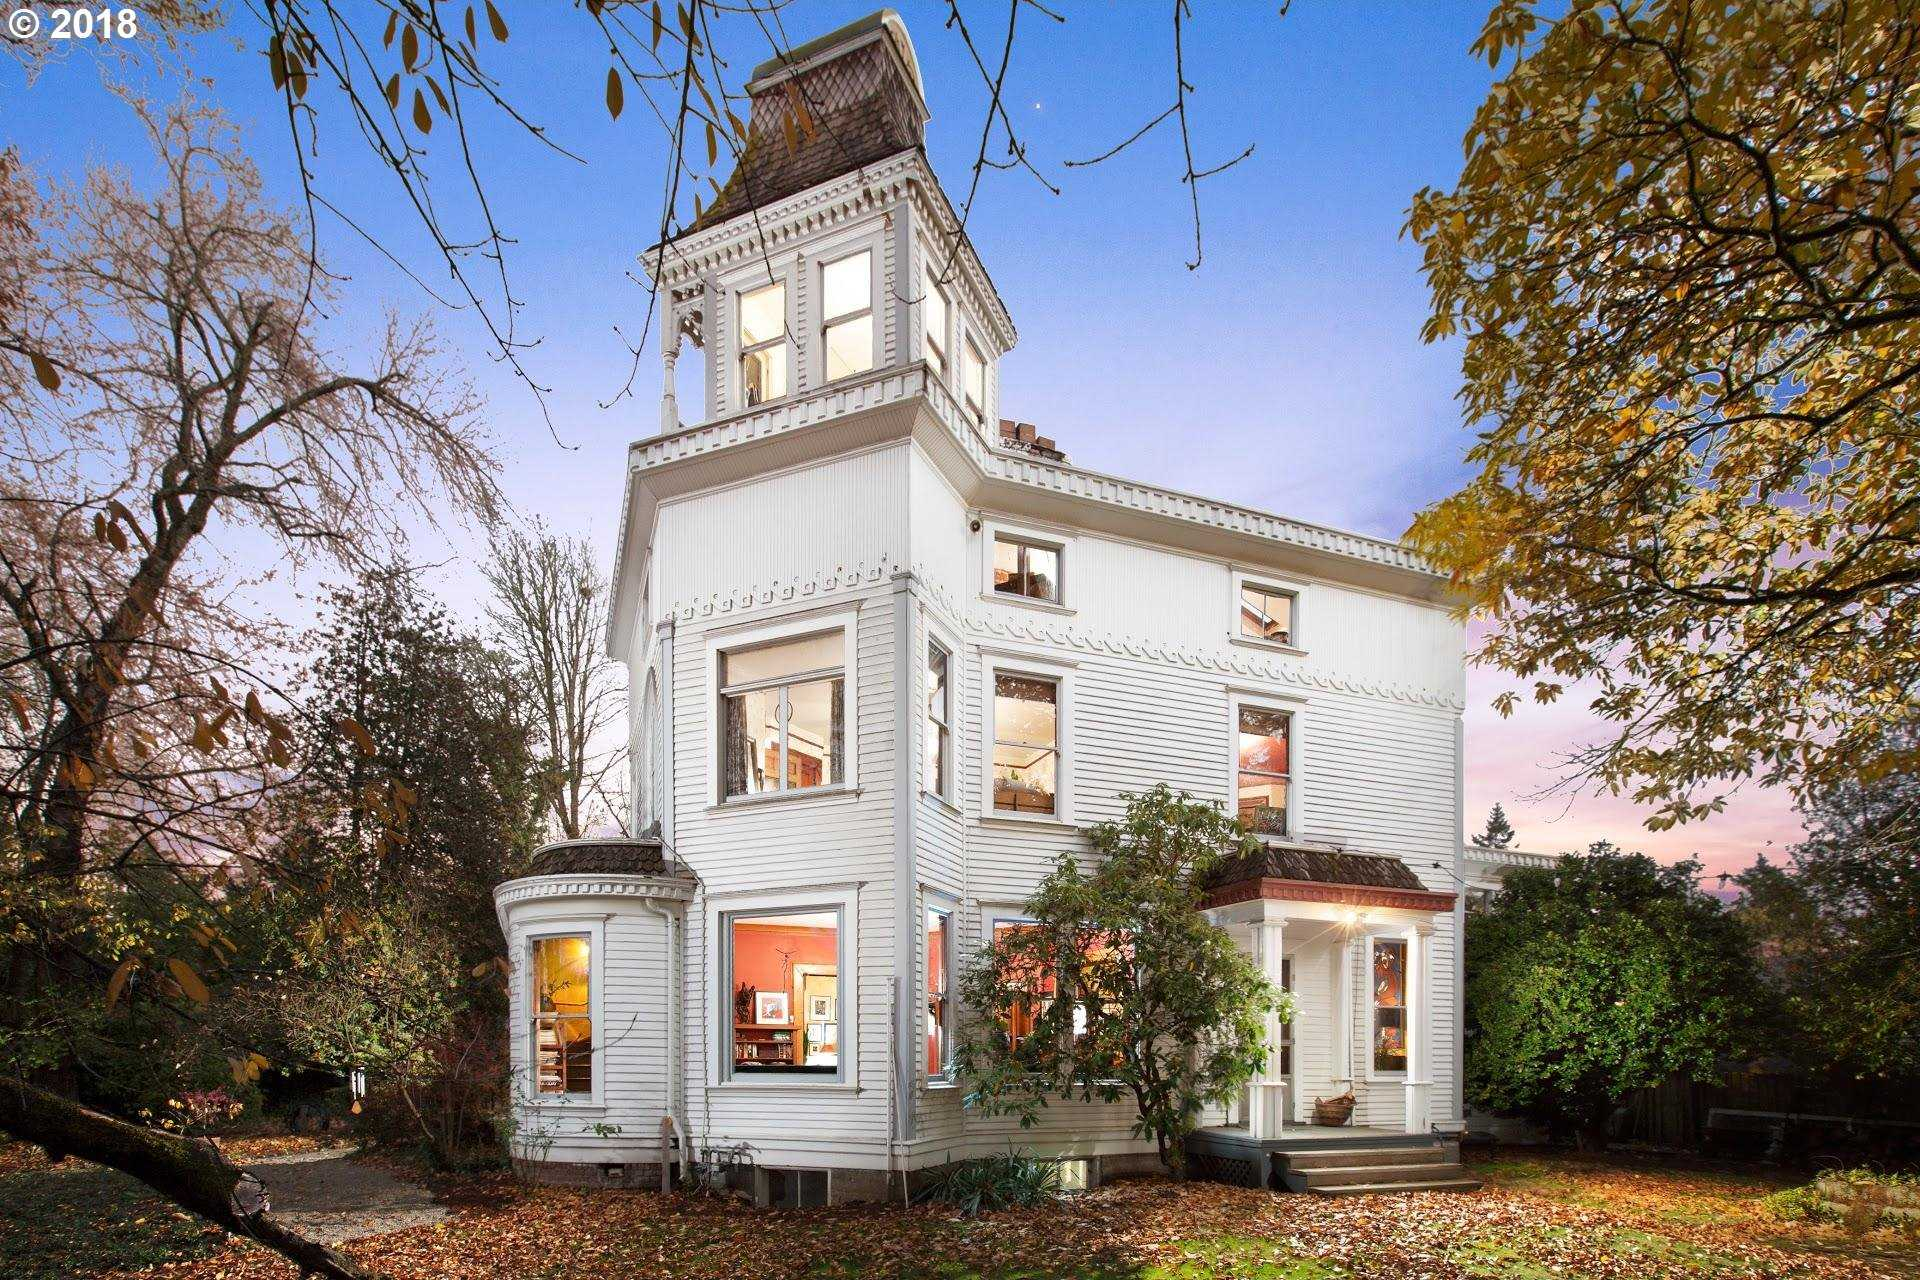 $1,365,000 - 5Br/2Ba -  for Sale in Eastmoreland/ Woodstock, Portland